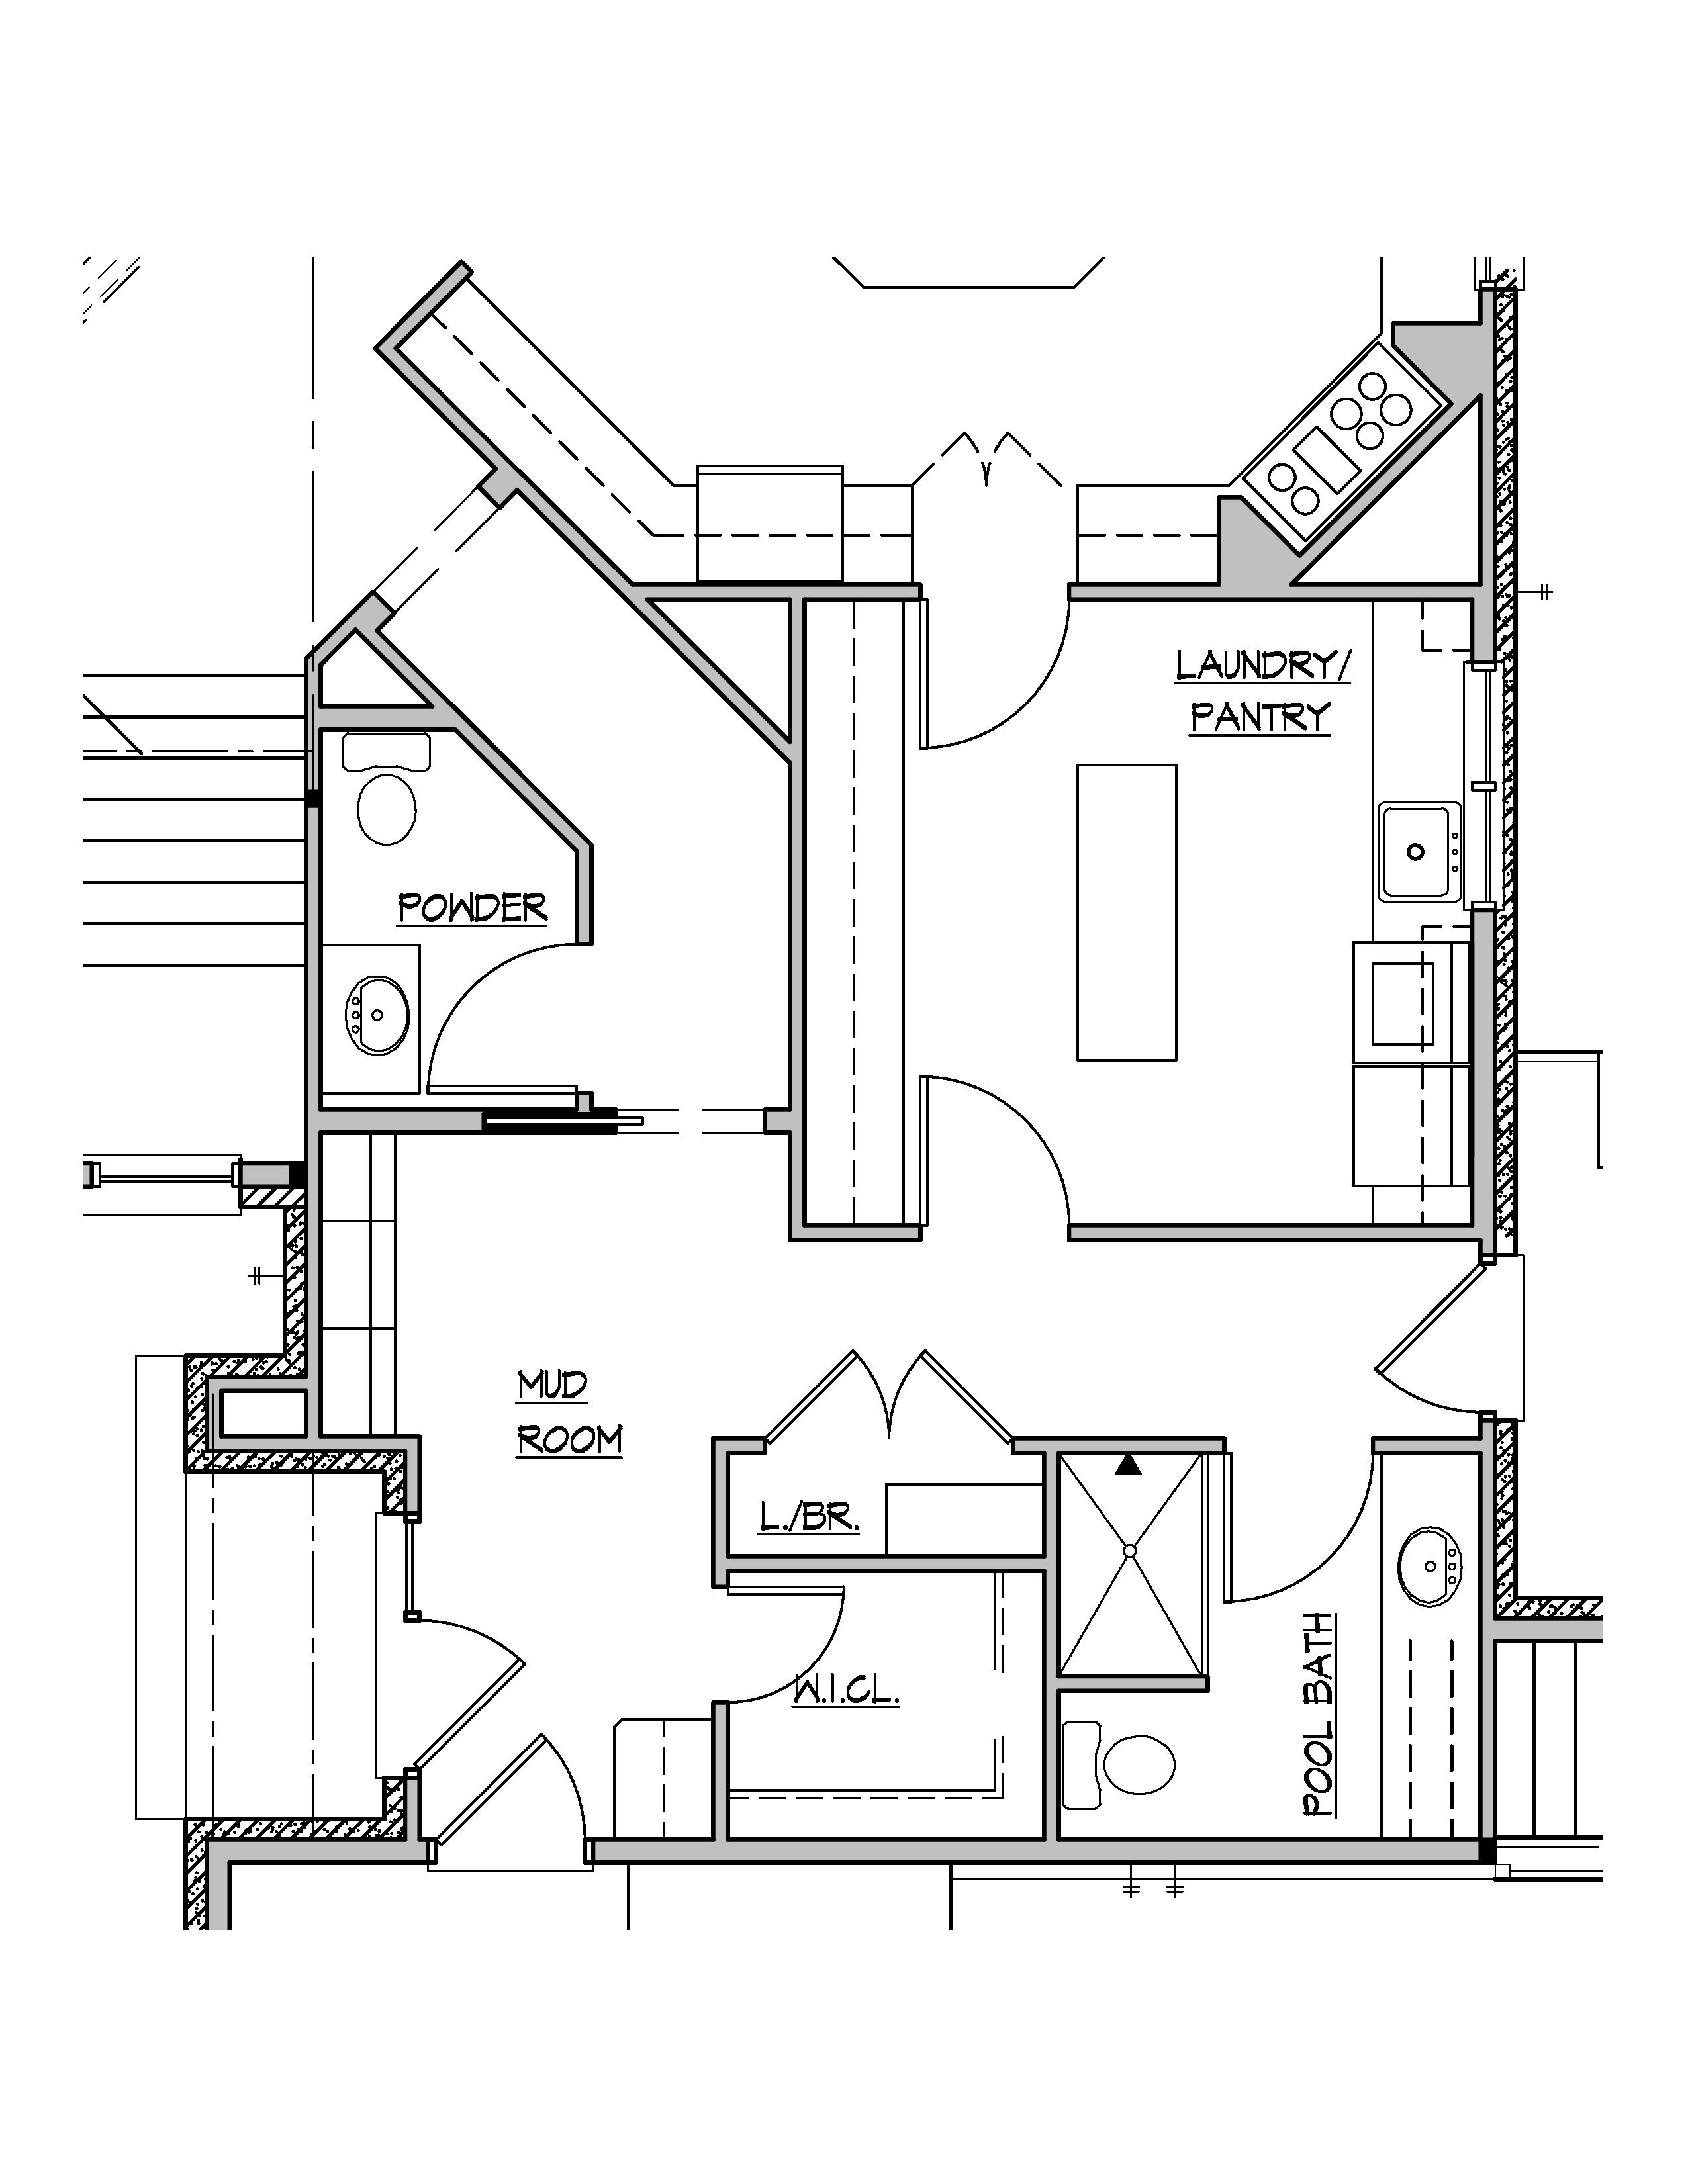 Laundry Room Design Plans Duwet Laundry Room Layouts Floor Plans Room Layout